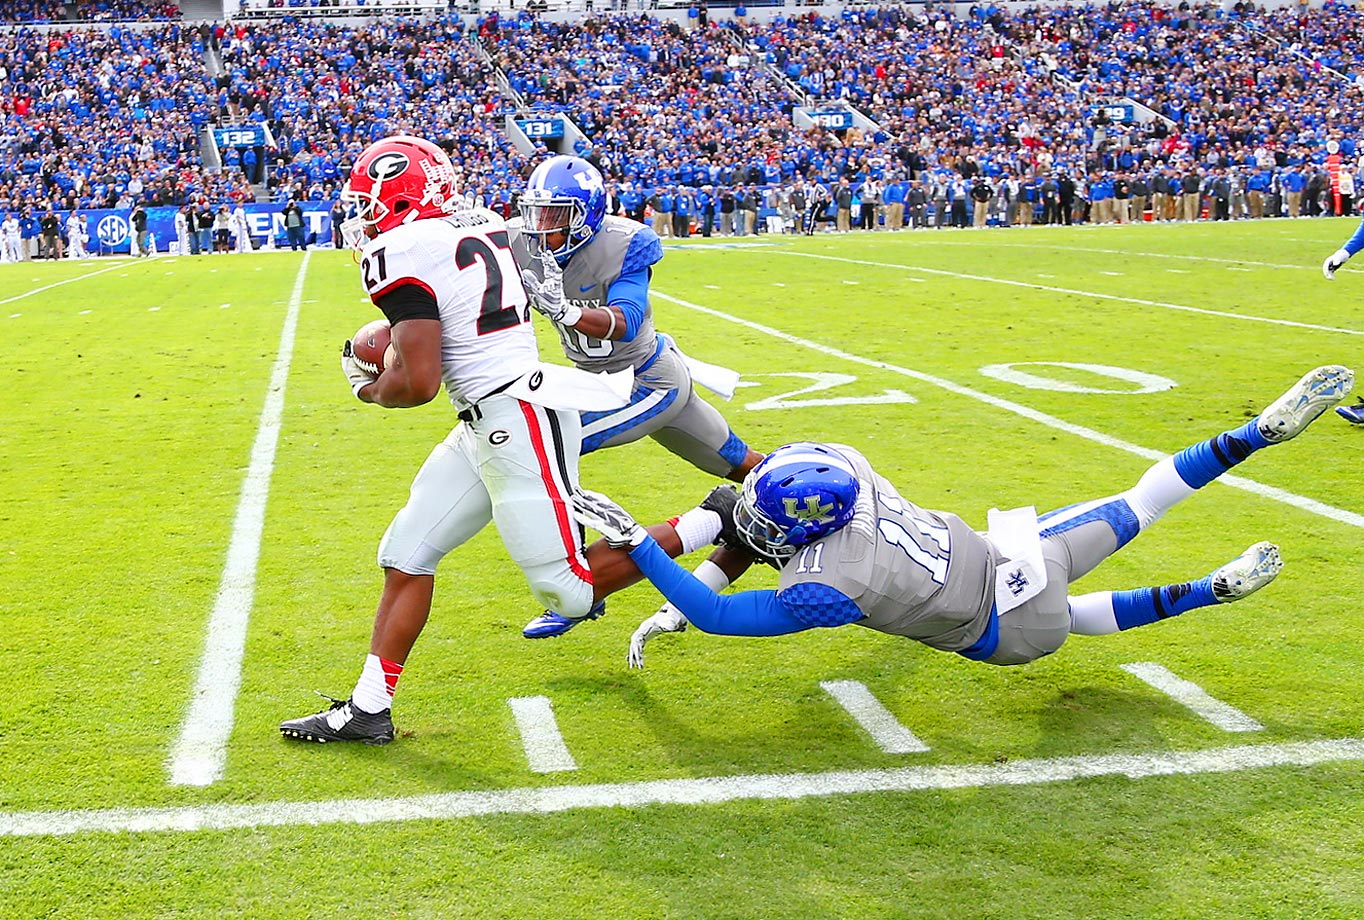 Nick Chubb of Georgia runs for yards against J.D. Harmon and Cody Quinn of Kentucky. Chubb finished with 170 yards and one touchdown in the Georgia win.